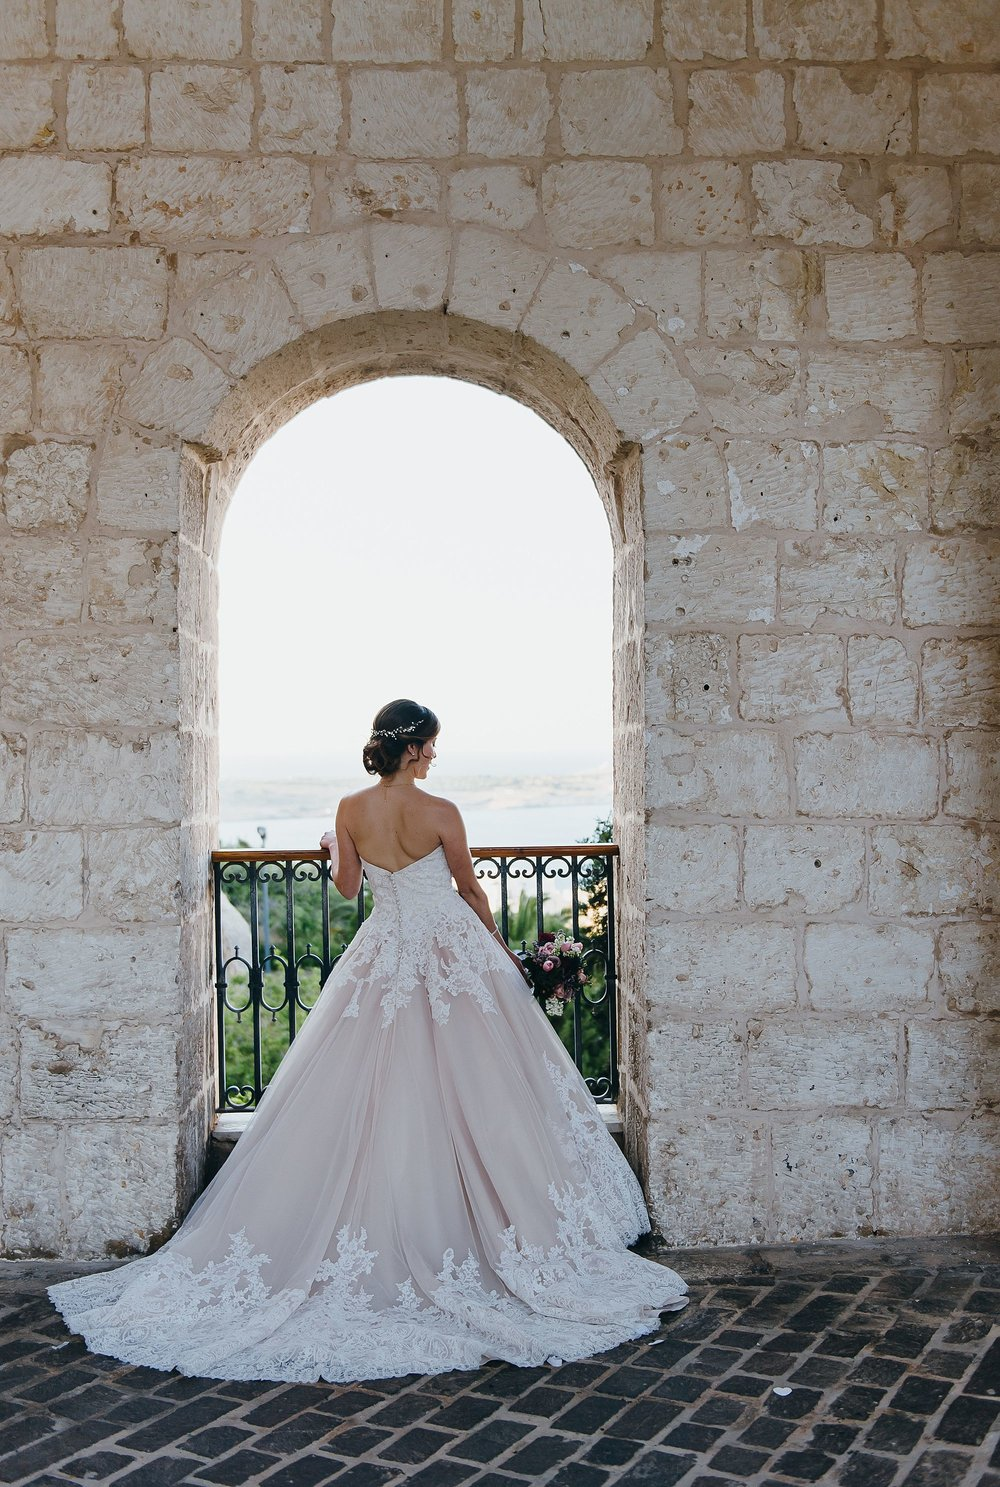 Lorraine & Cliff - The Hilton - Wedding Photography Malta - Shane P. WattsLorraine & Cliff - The Hilton - Wedding Photography Malta - Shane P. Watts